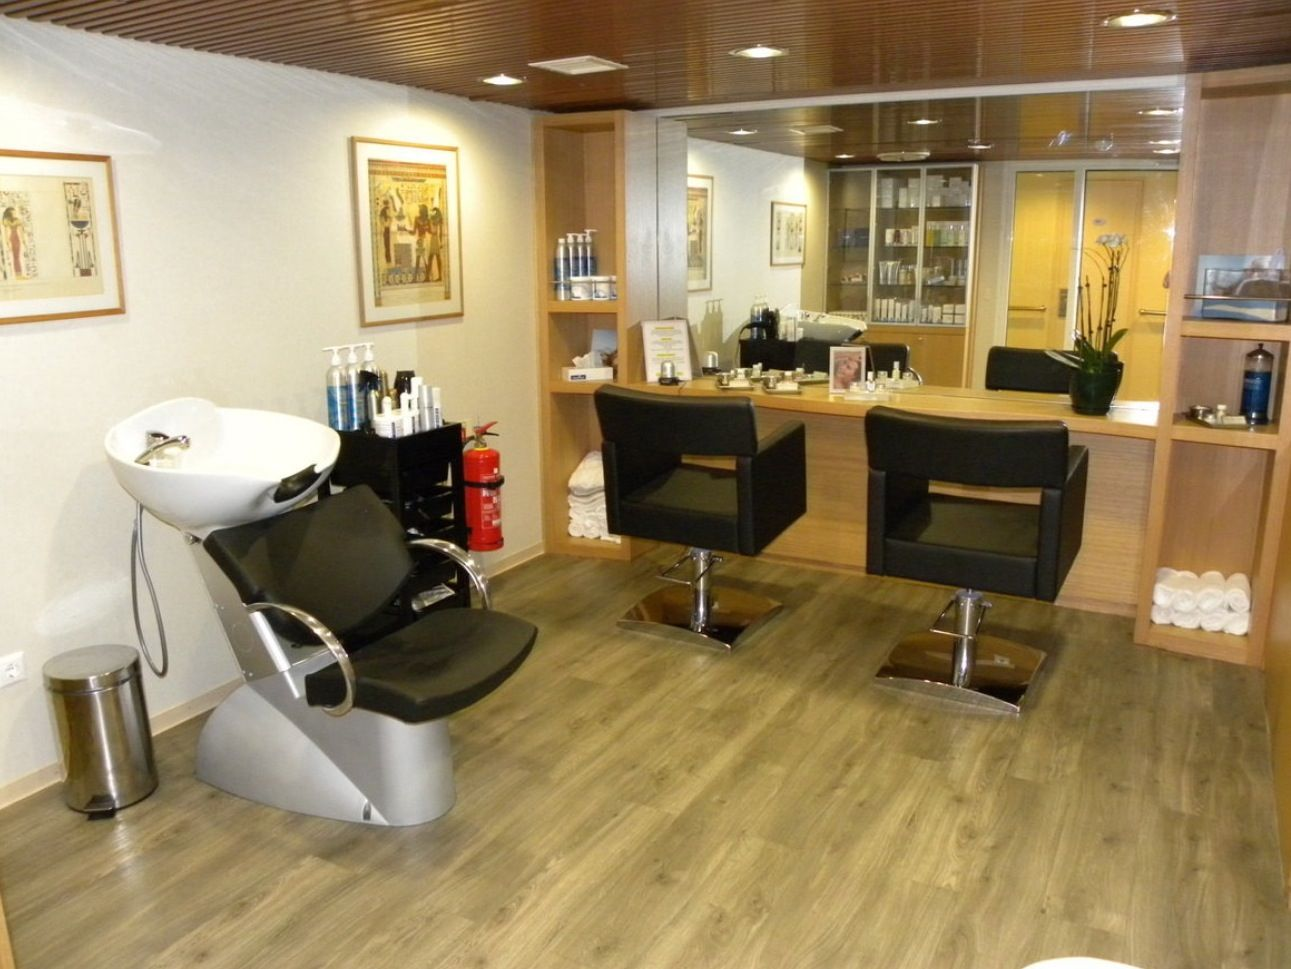 Small salon perfect want want want just for me for A beautiful you salon